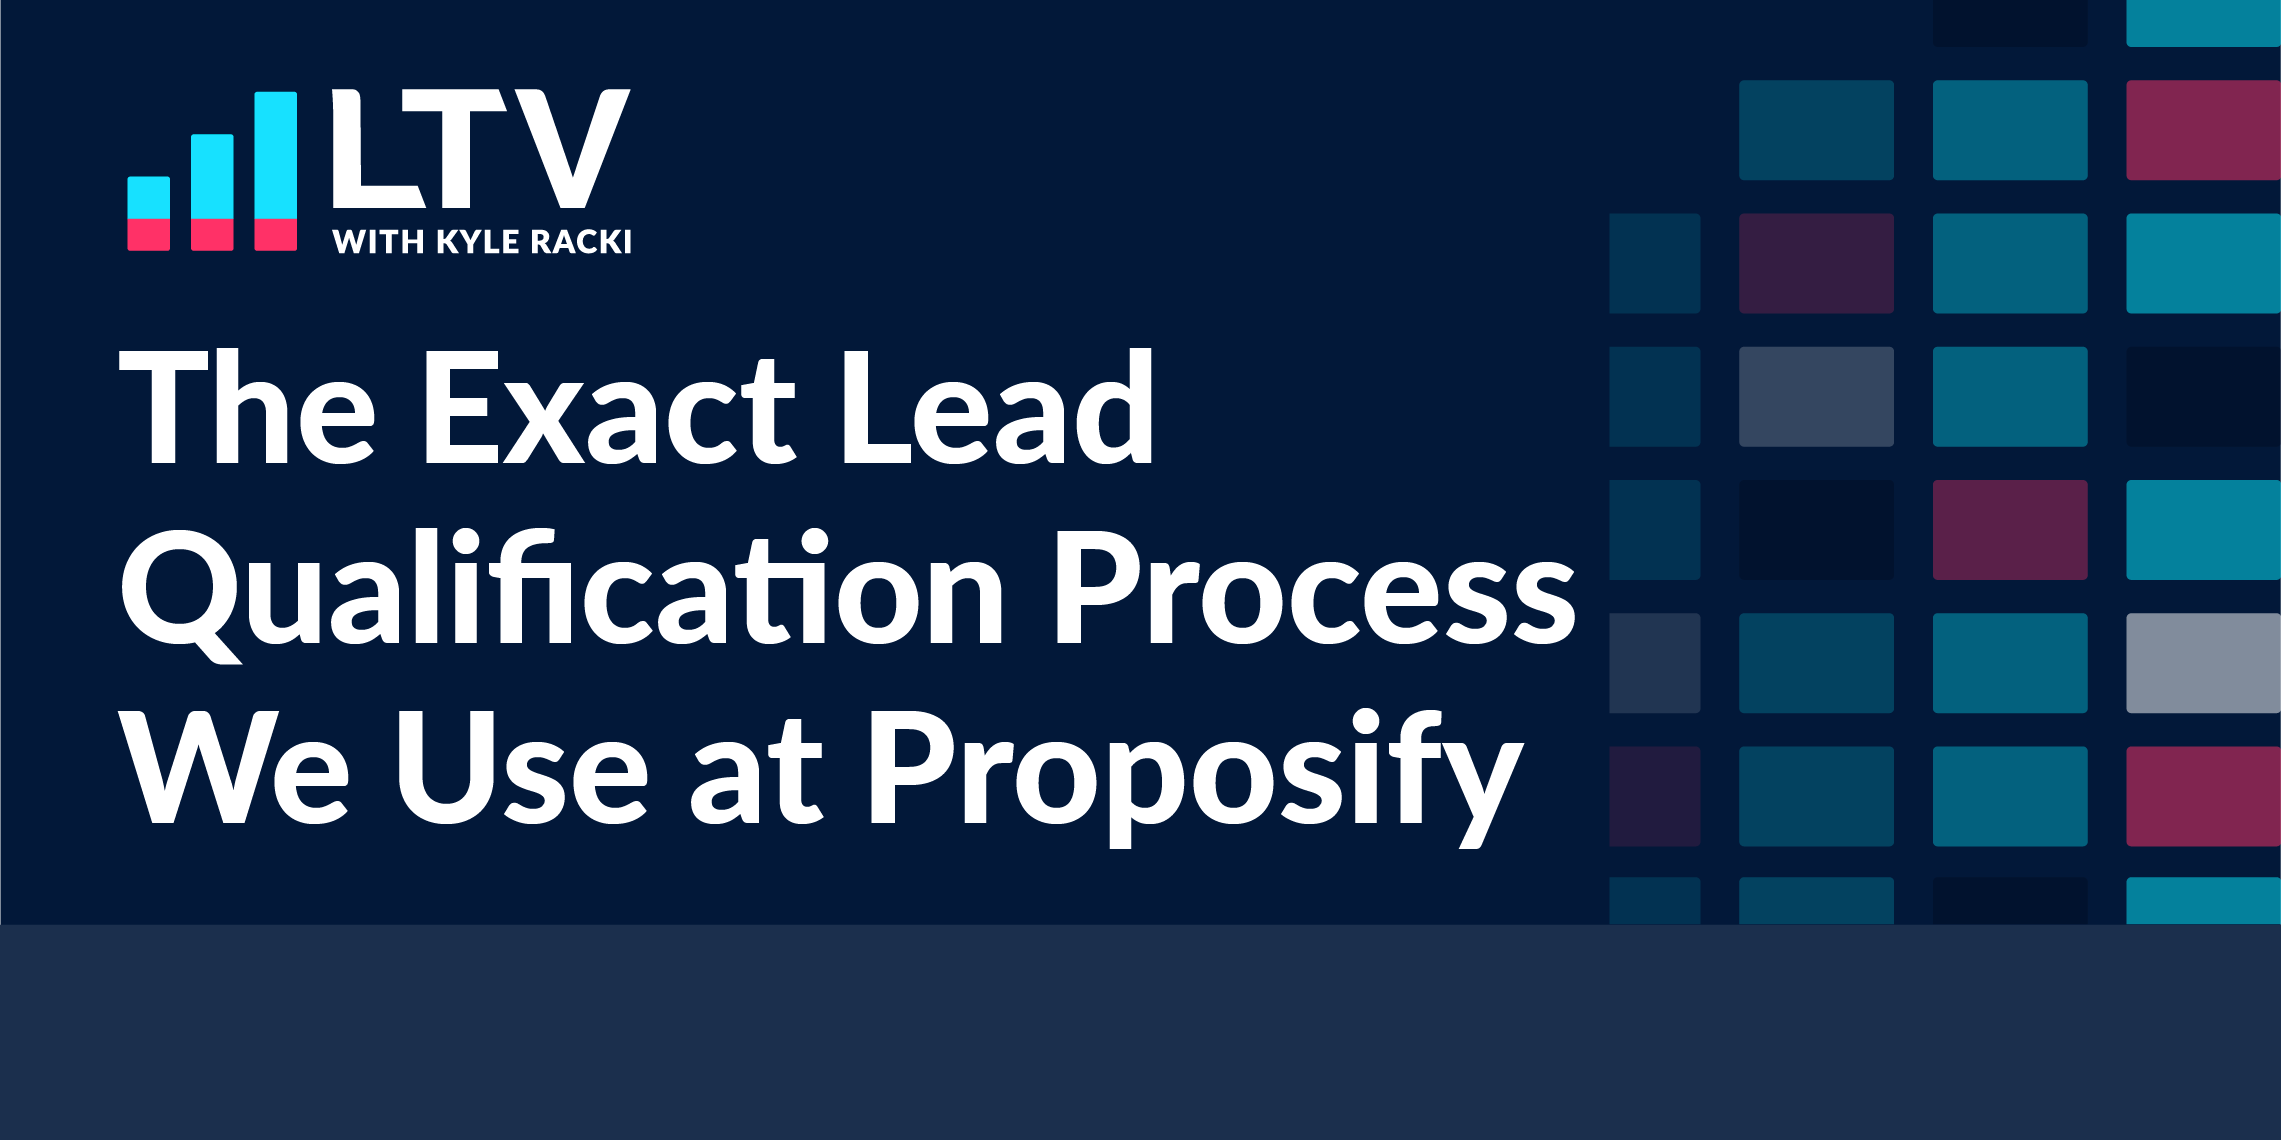 the exact lead qualification process we use at proposify